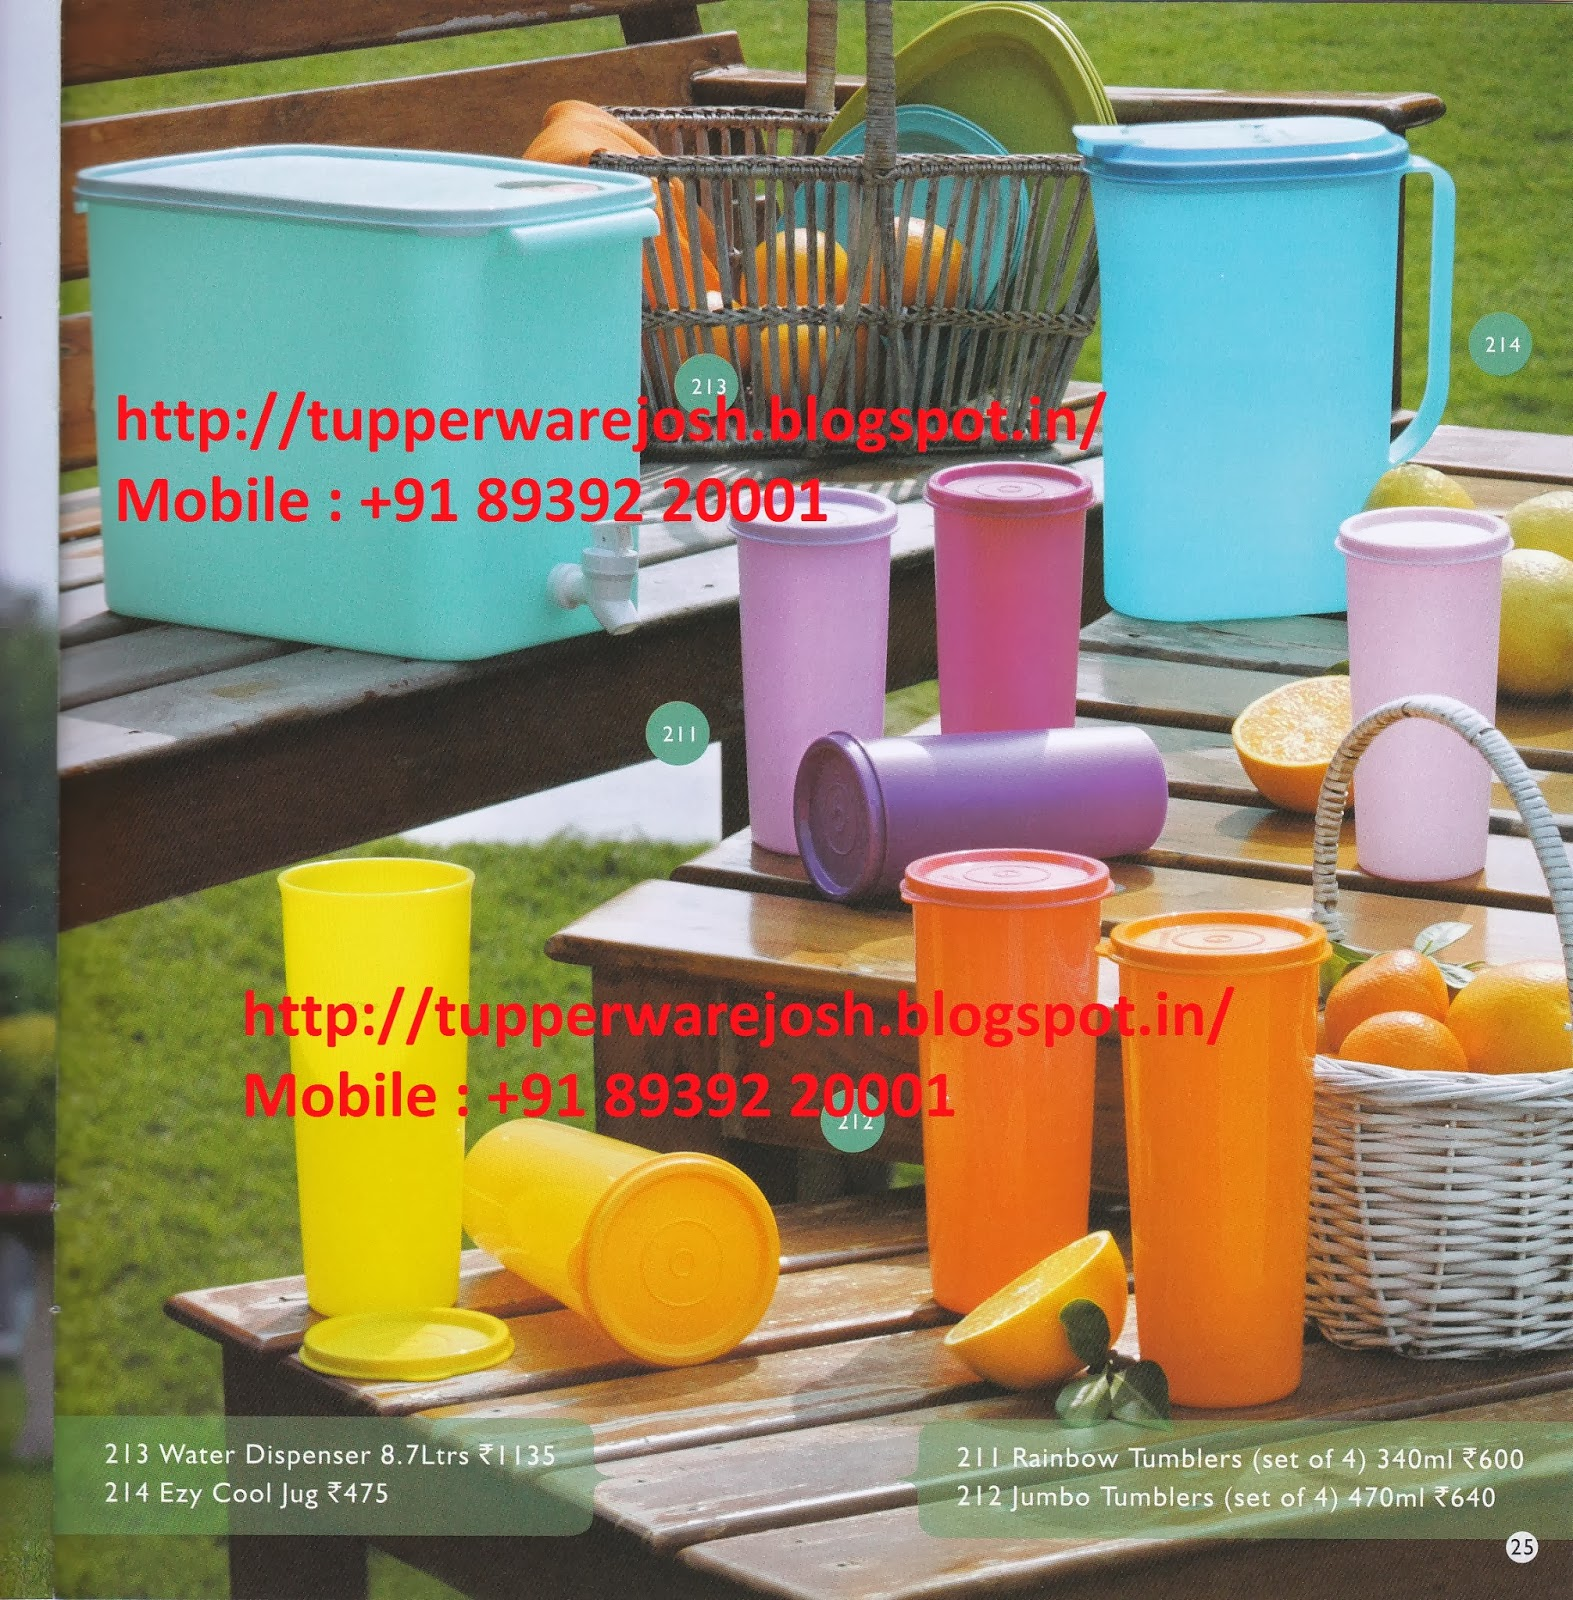 tupperware in india 116 tupperware reviews a free inside look at  i have been working at  tupperware full-time (more than 3 years) pros  tupperware india.